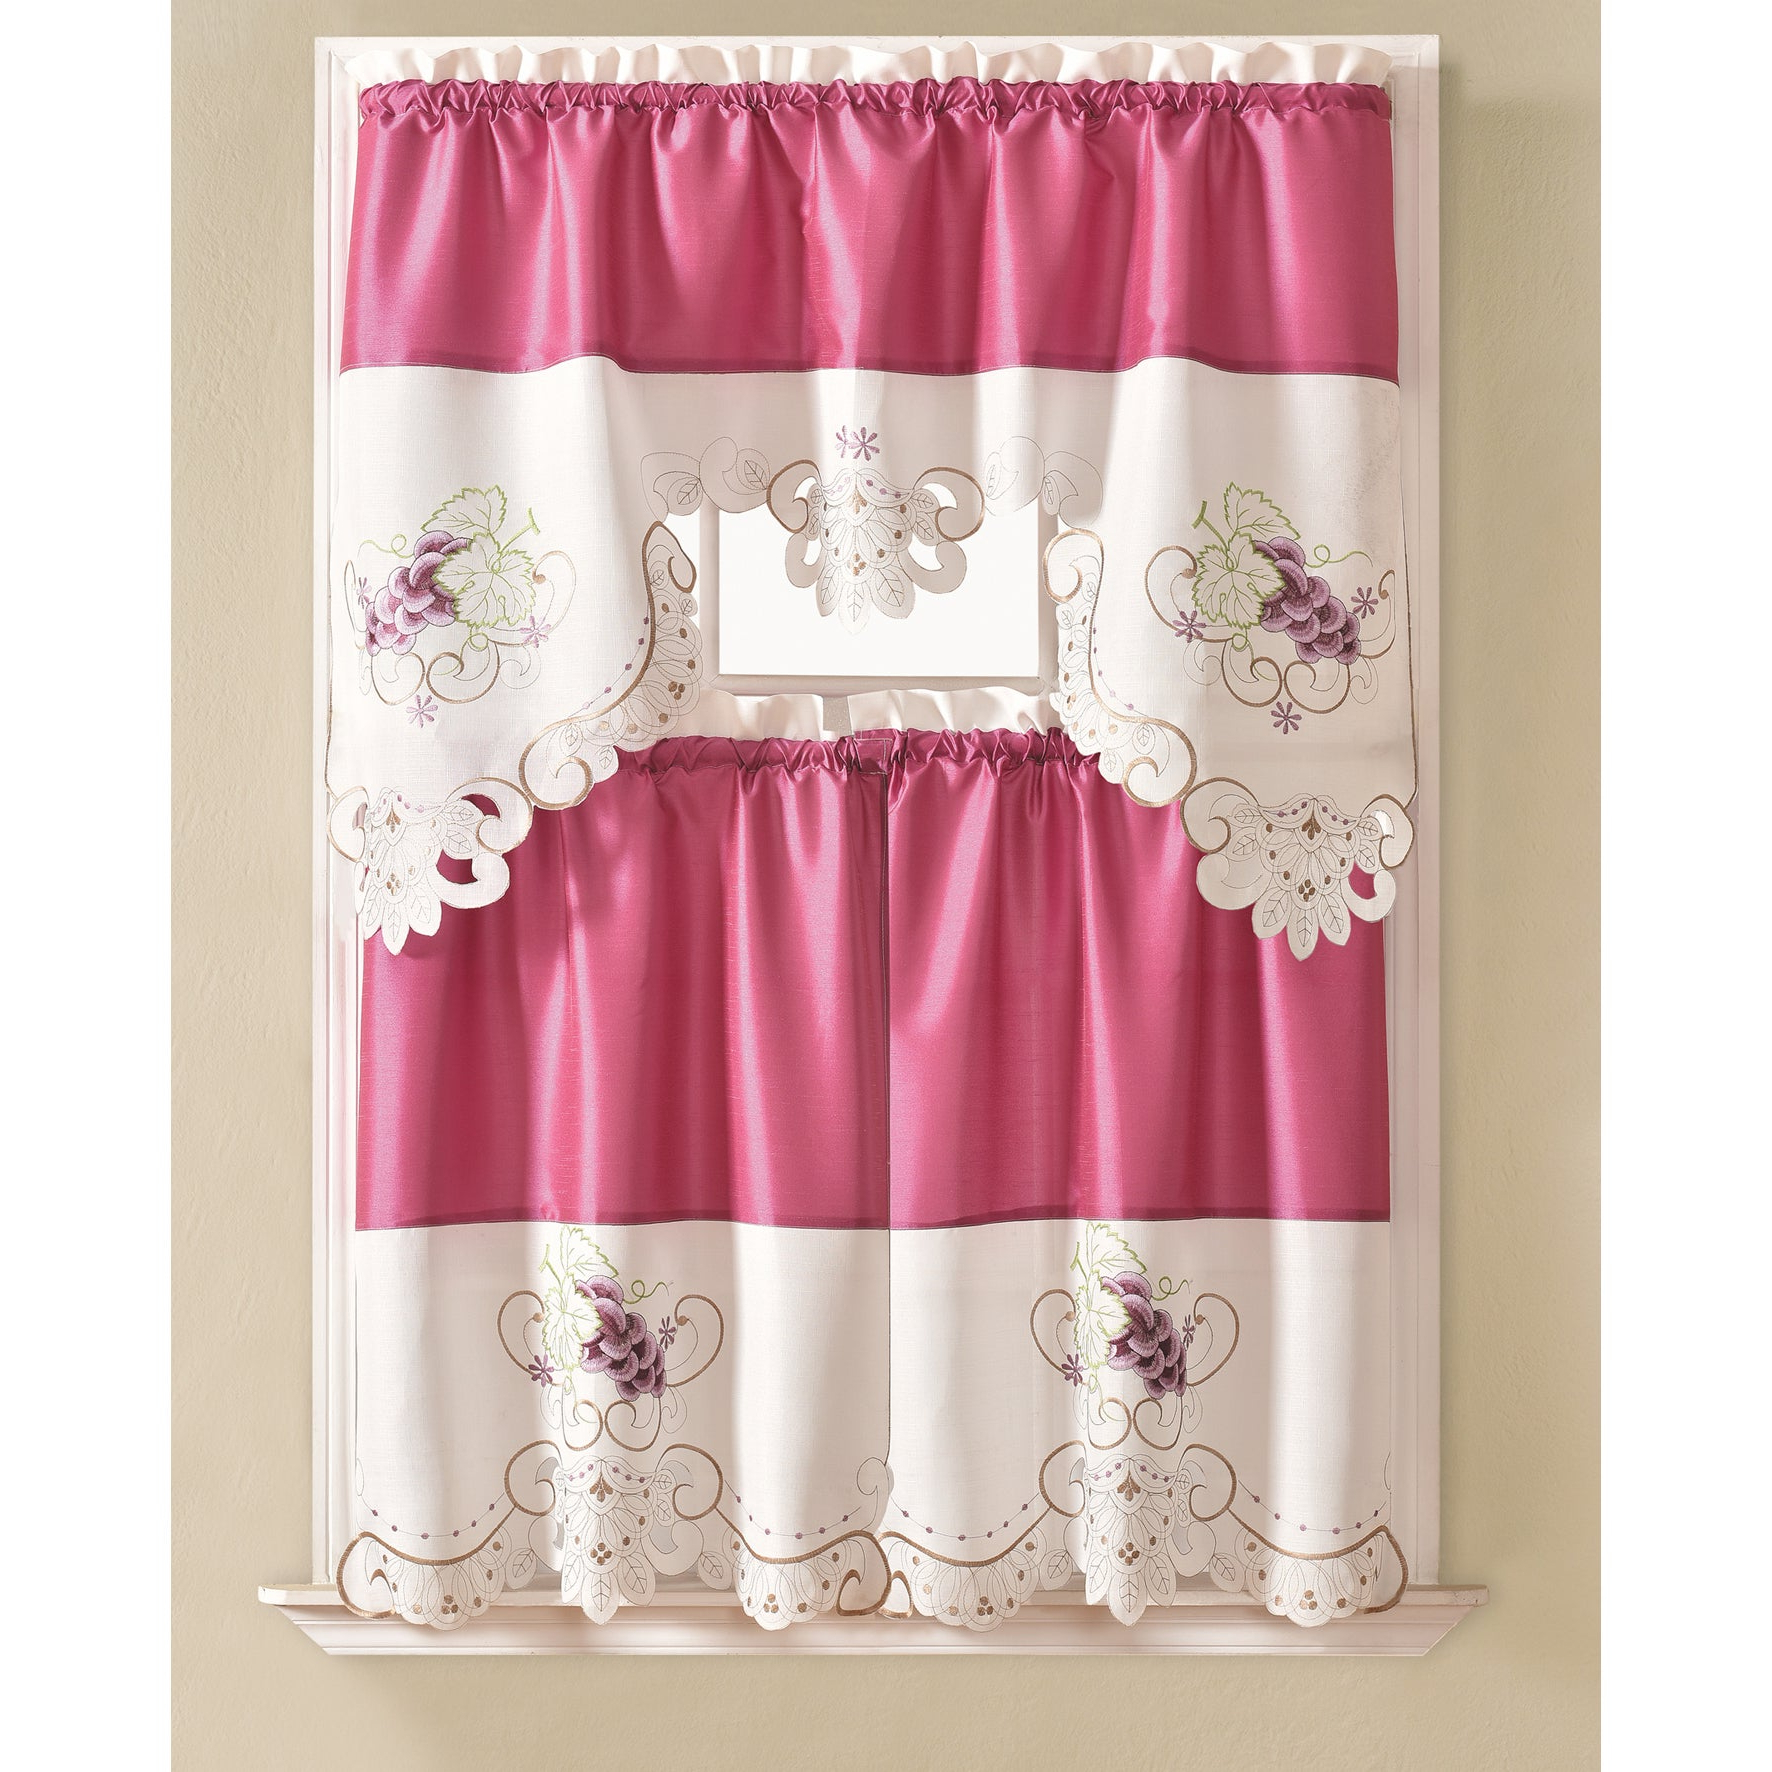 Famous Rt Designers Collection Noble Embroidered Tier And Valance Kitchen Curtain Tier Set With Urban Embroidered Tier And Valance Kitchen Curtain Tier Sets (View 10 of 20)